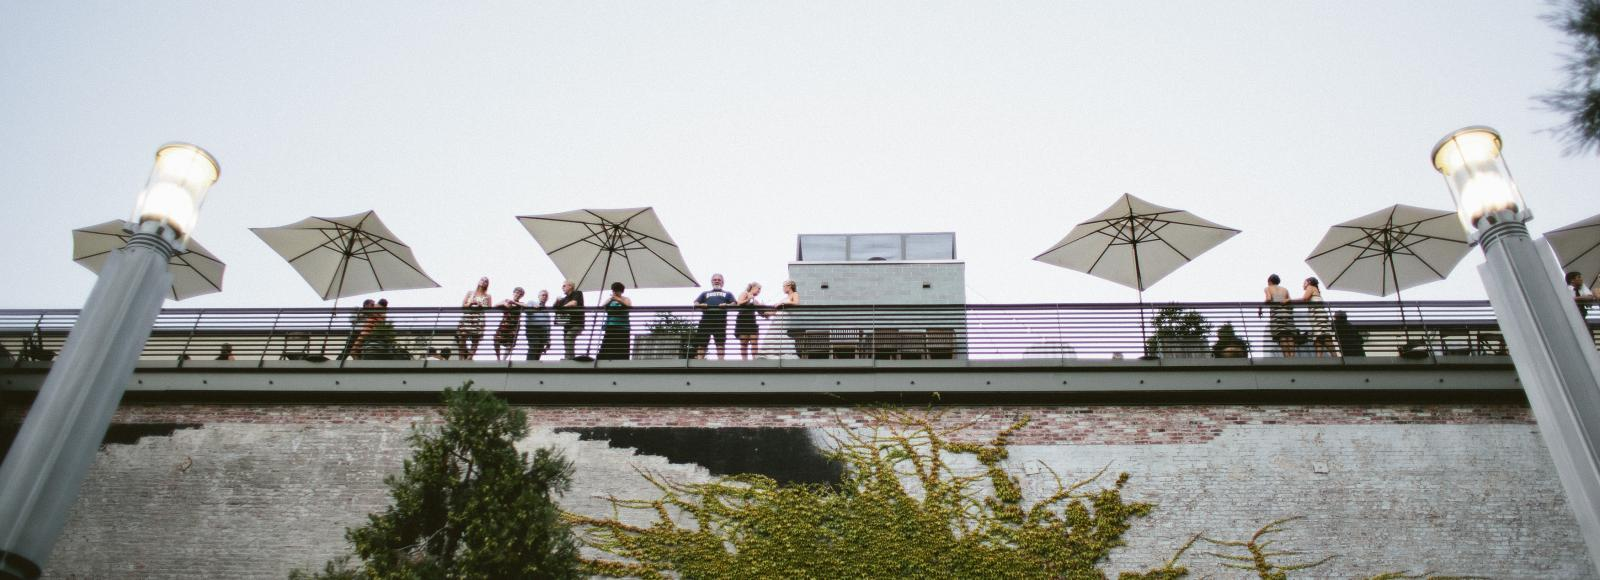 West side of the Ecotrust building, looking up at the terrace from below. Ivy covers much of the brick. The lights are on and the umbrellas are open on the terrace. People are talking and looking down.